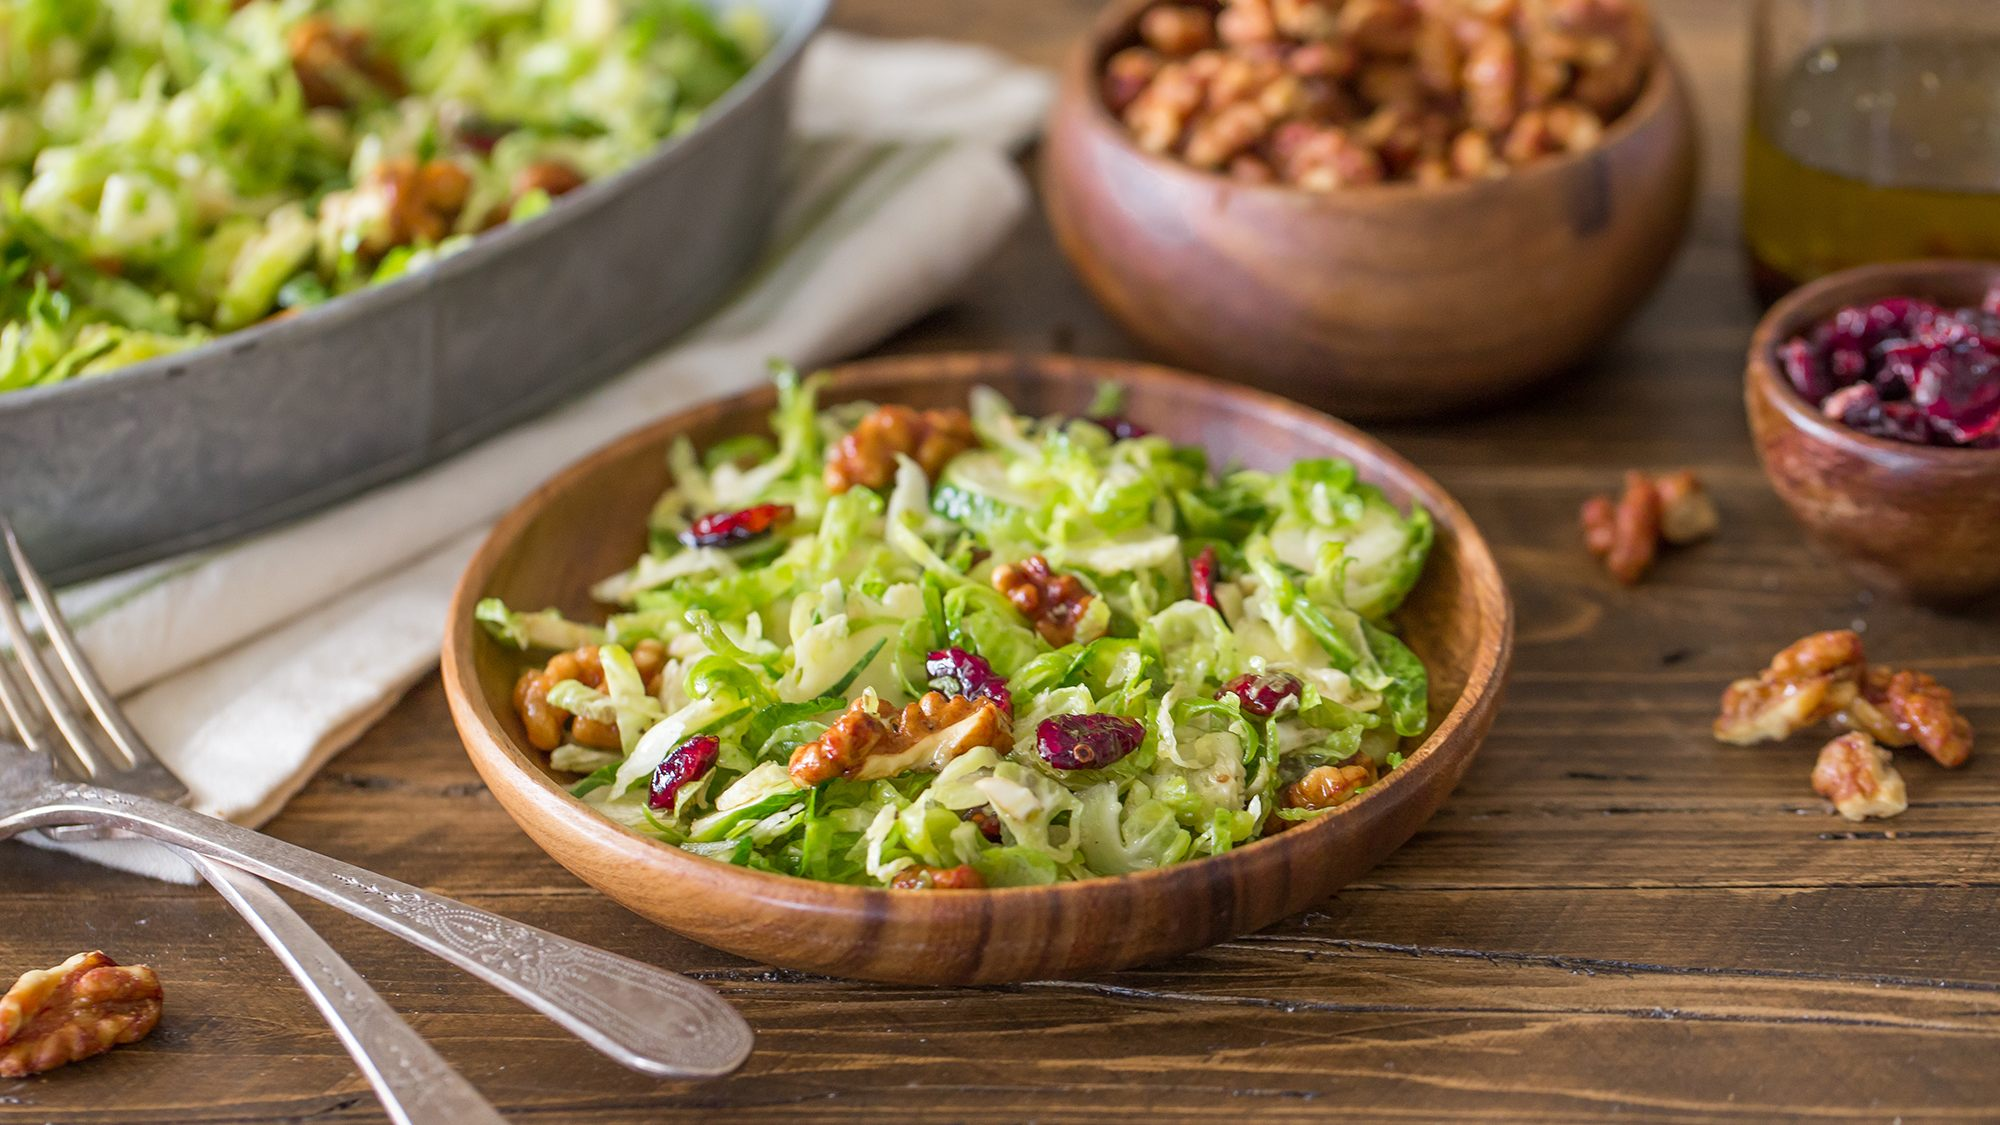 shaved-brussels-sprouts-salad-with-cranberries-and-toasted-walnuts.jpg